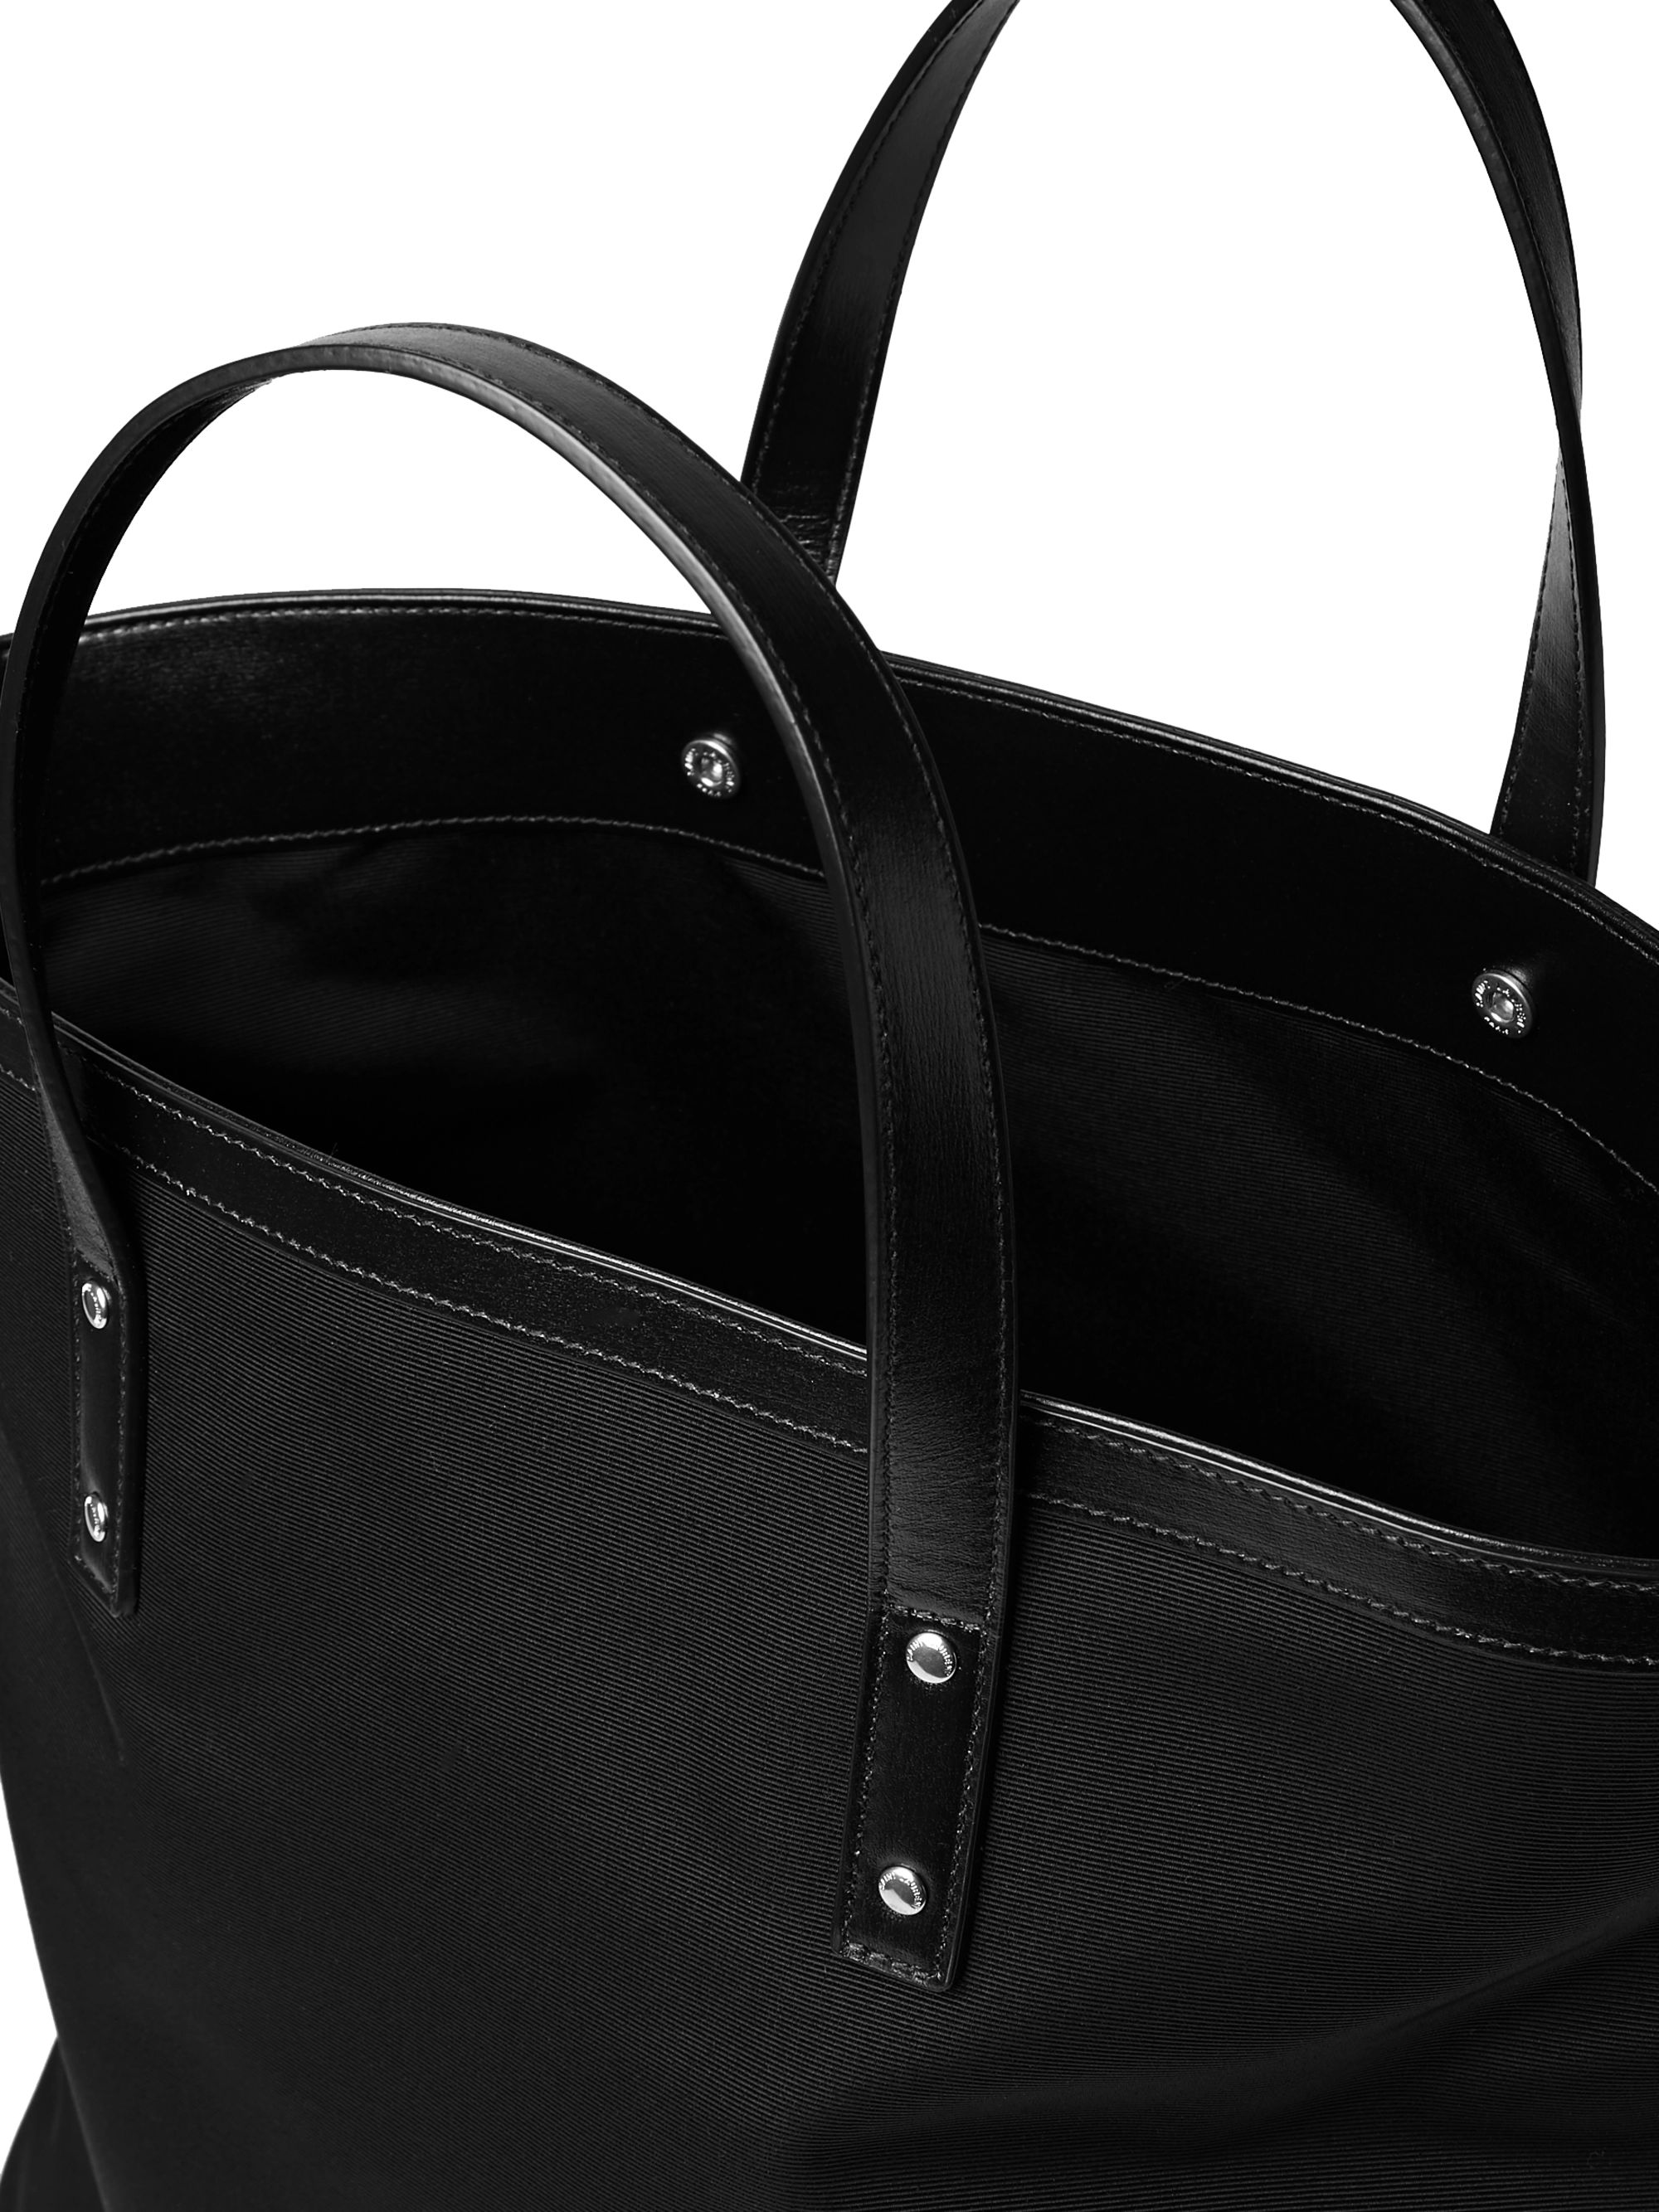 SAINT LAURENT Foldable Leather-Trimmed Faille Tote Bag